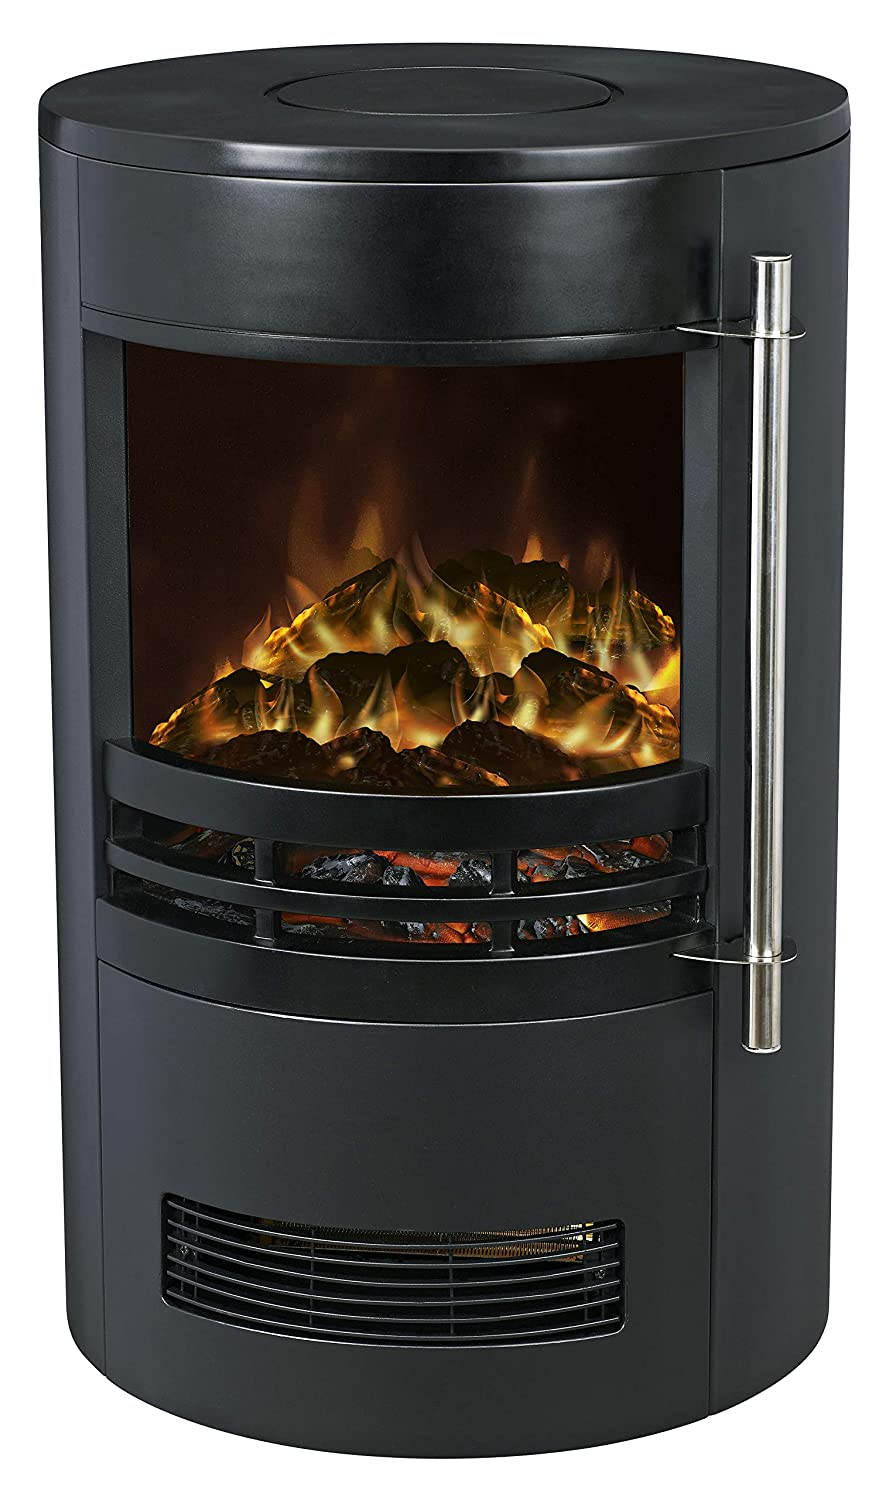 Galleon Fires -'Eris' Electric Stove with 3D Exclusive LED Log Effect -LED Realistic Flame - Round Modern Stove - Portable - Fireplace - with Real Log Flame Effect - Electric Stove Fan Heater - Black Galleon Fireplaces